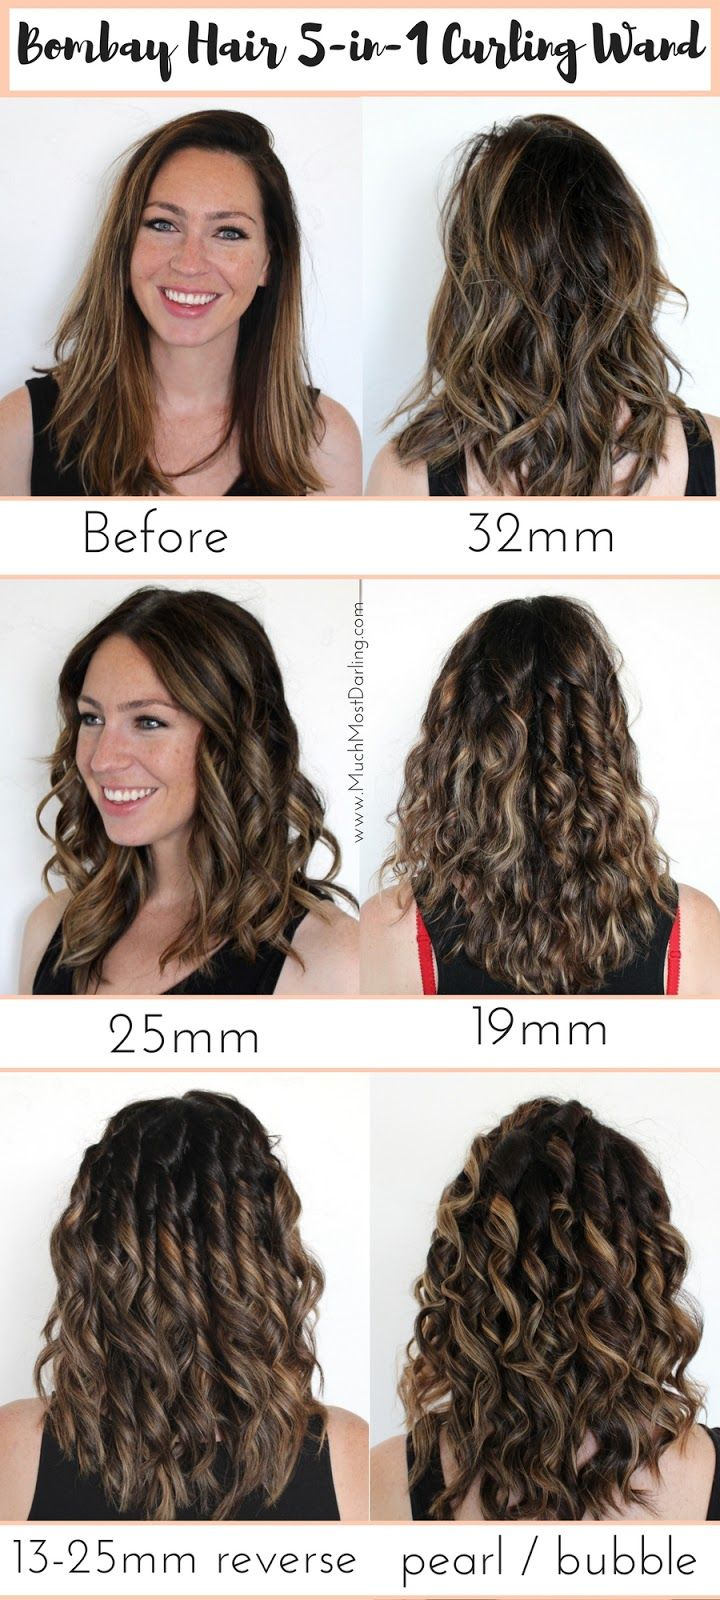 The Best Curling Irons For Short Hair Good Curling Irons Curling Iron Short Hair Big Curls Short Hair